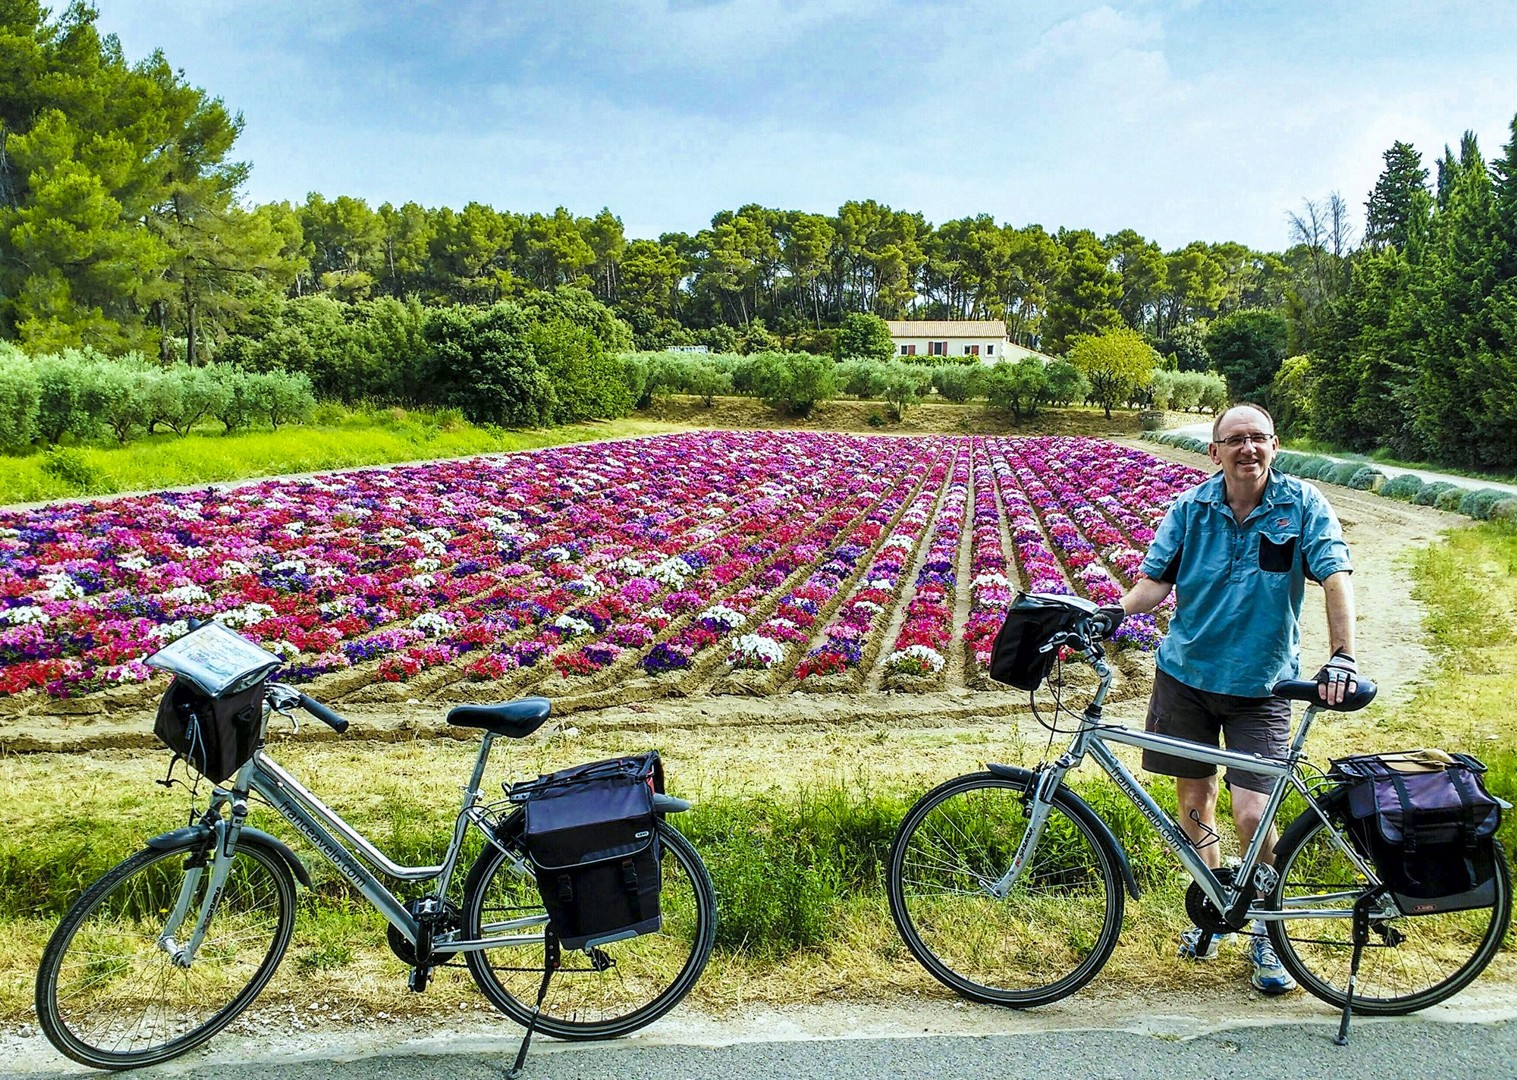 experience-culture-beautiful-provence-cycling-sunny-france-self-guided.jpg - France - Provence - Self-Guided Leisure Cycling Holiday - Leisure Cycling